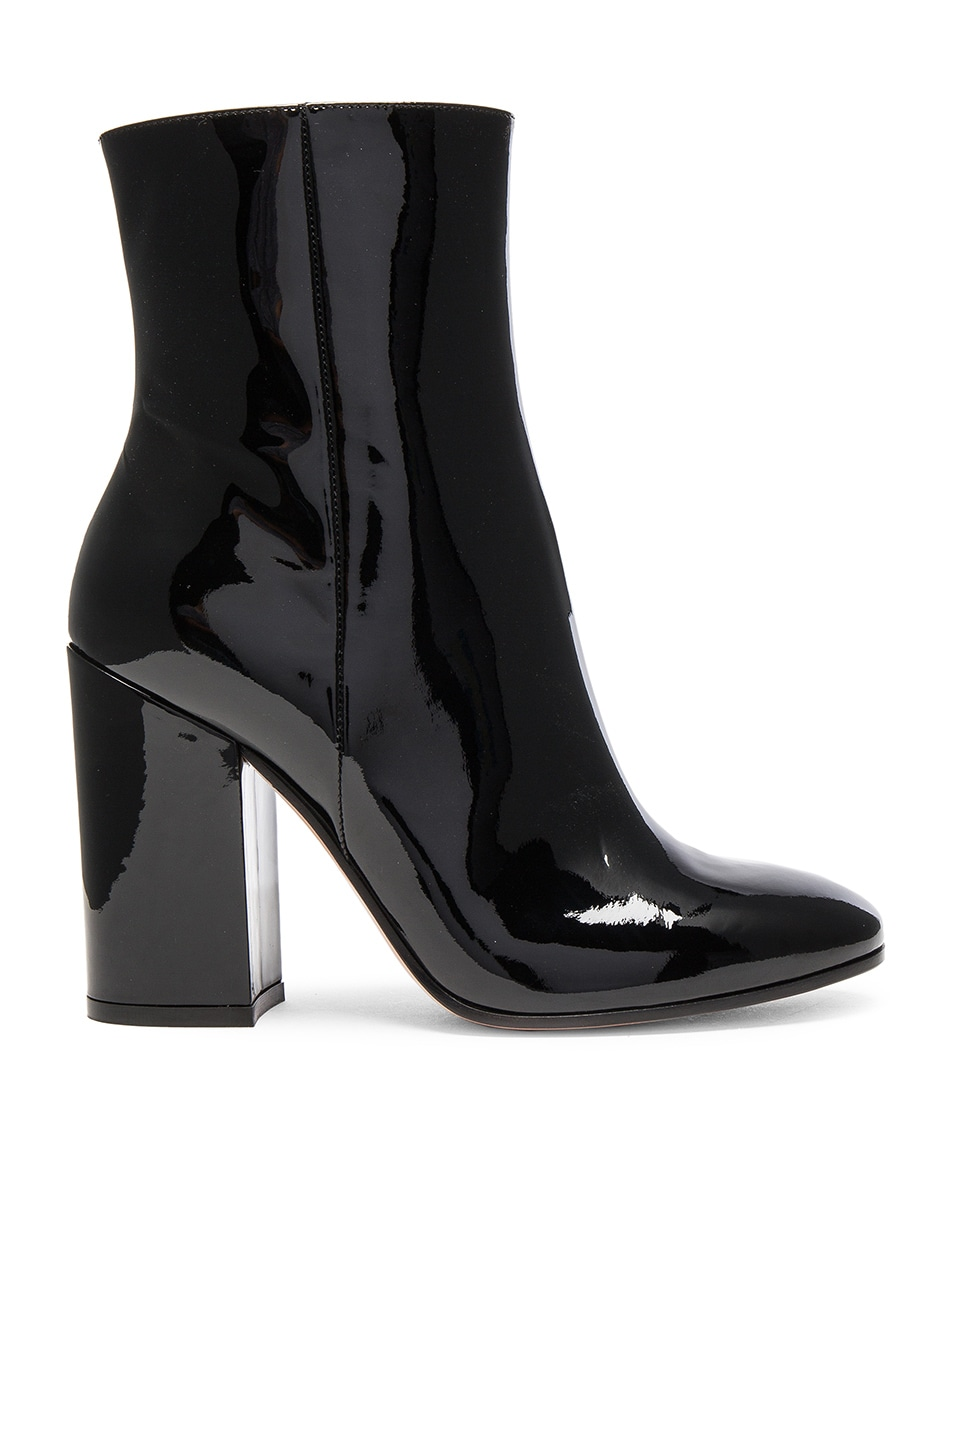 Nicekicks Cheap Online Low Shipping Fee Sale Online Gianvito Rossi Patent Leather Boots Online Sale liIEe0c